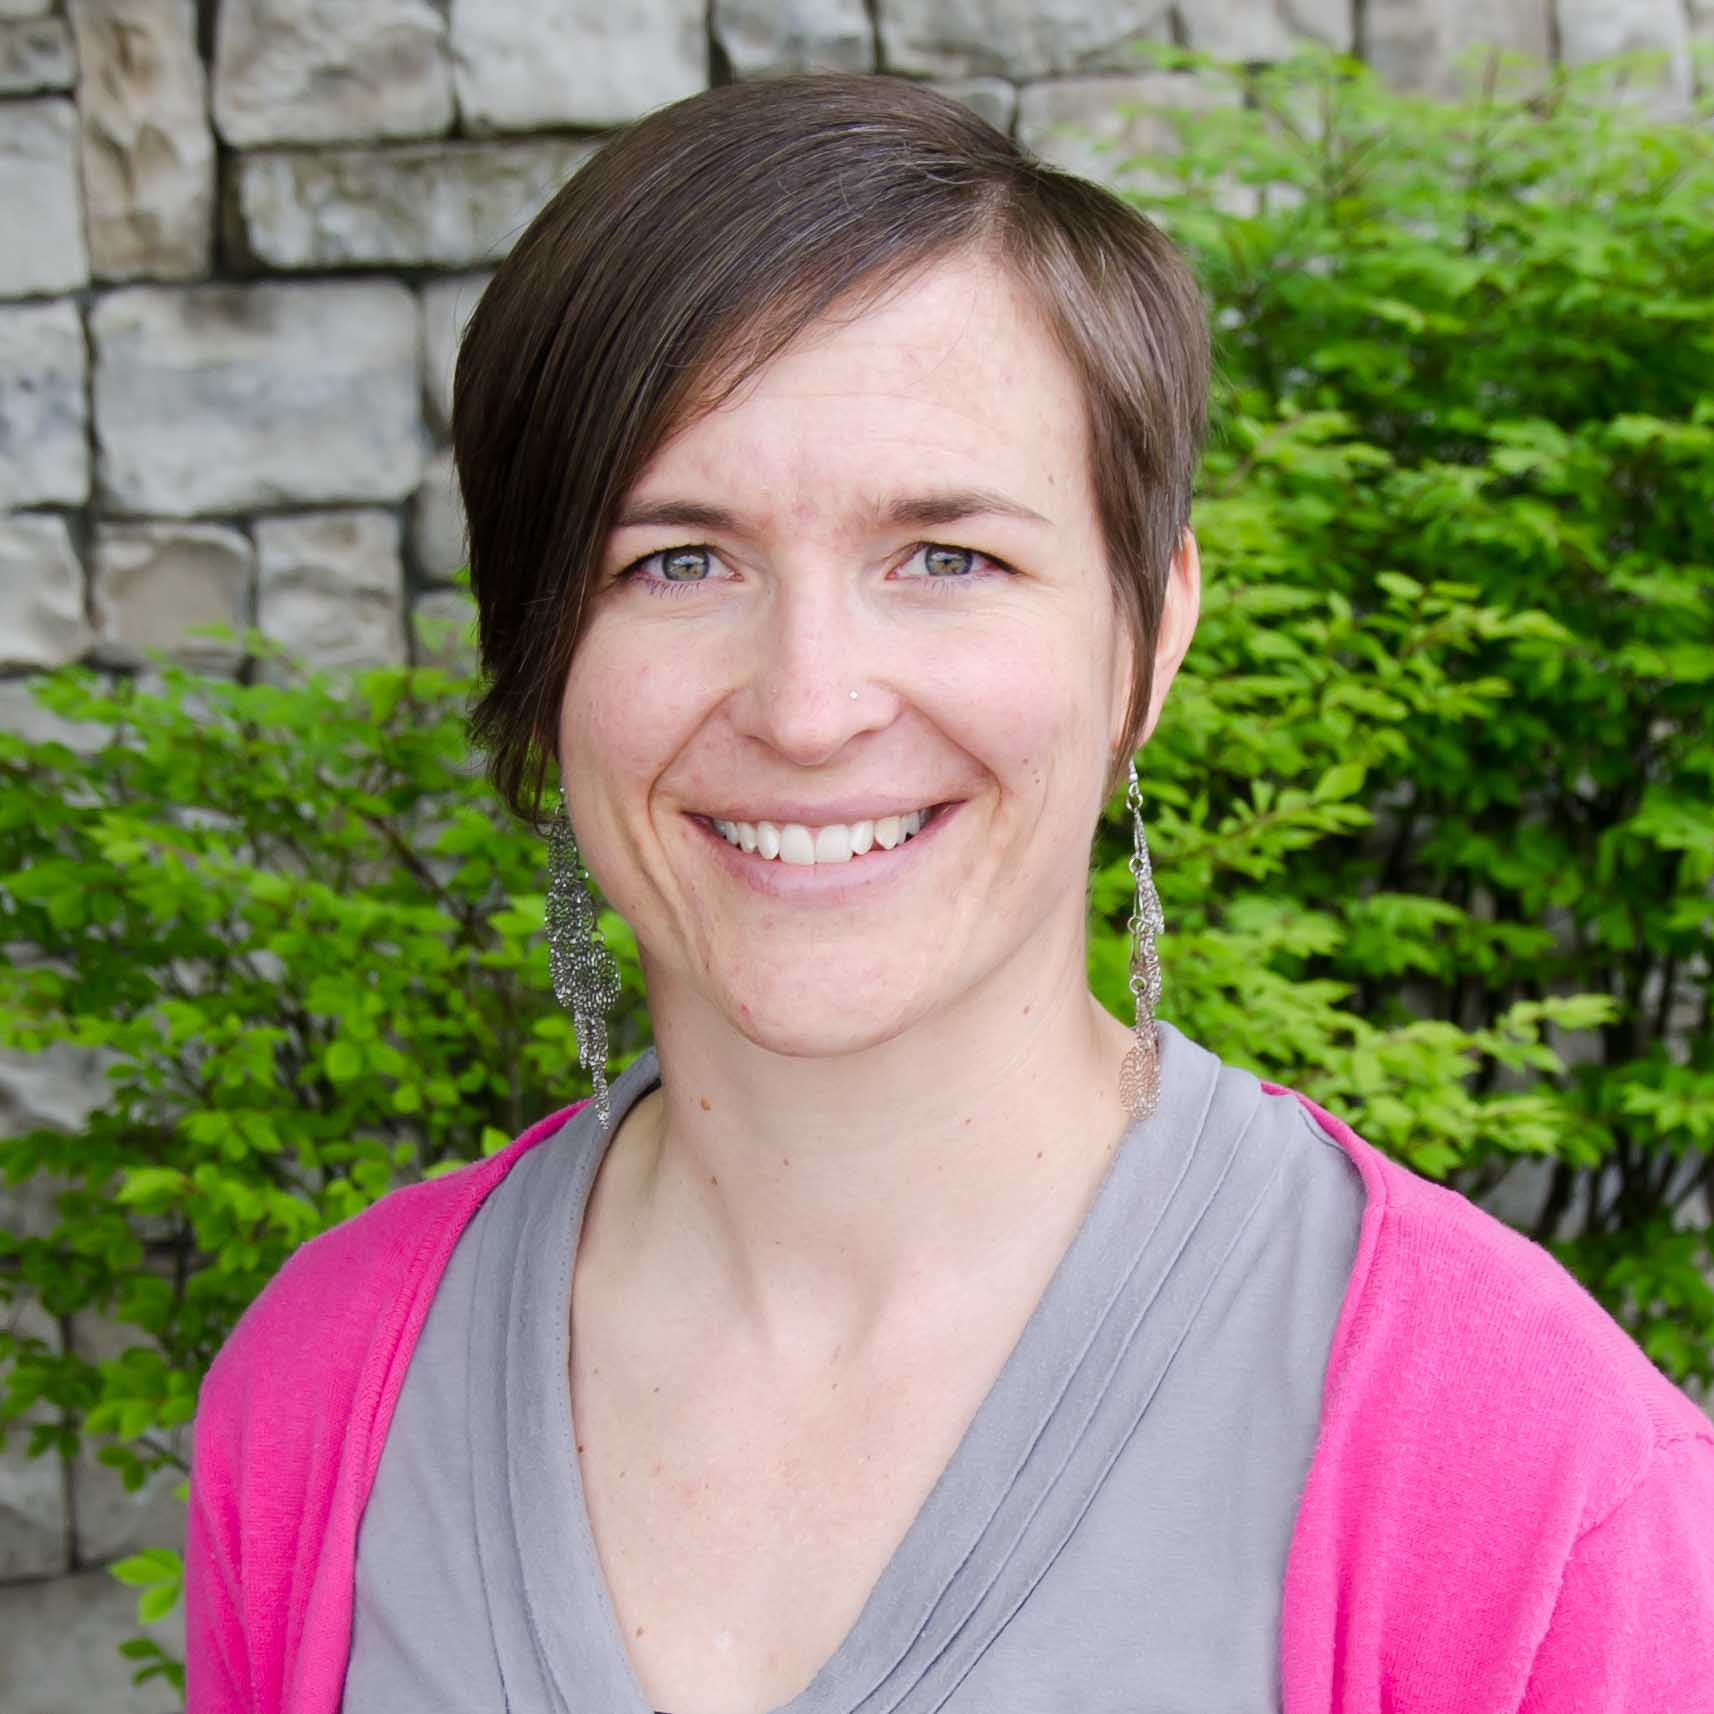 Staff Pictures - Kelly Ens